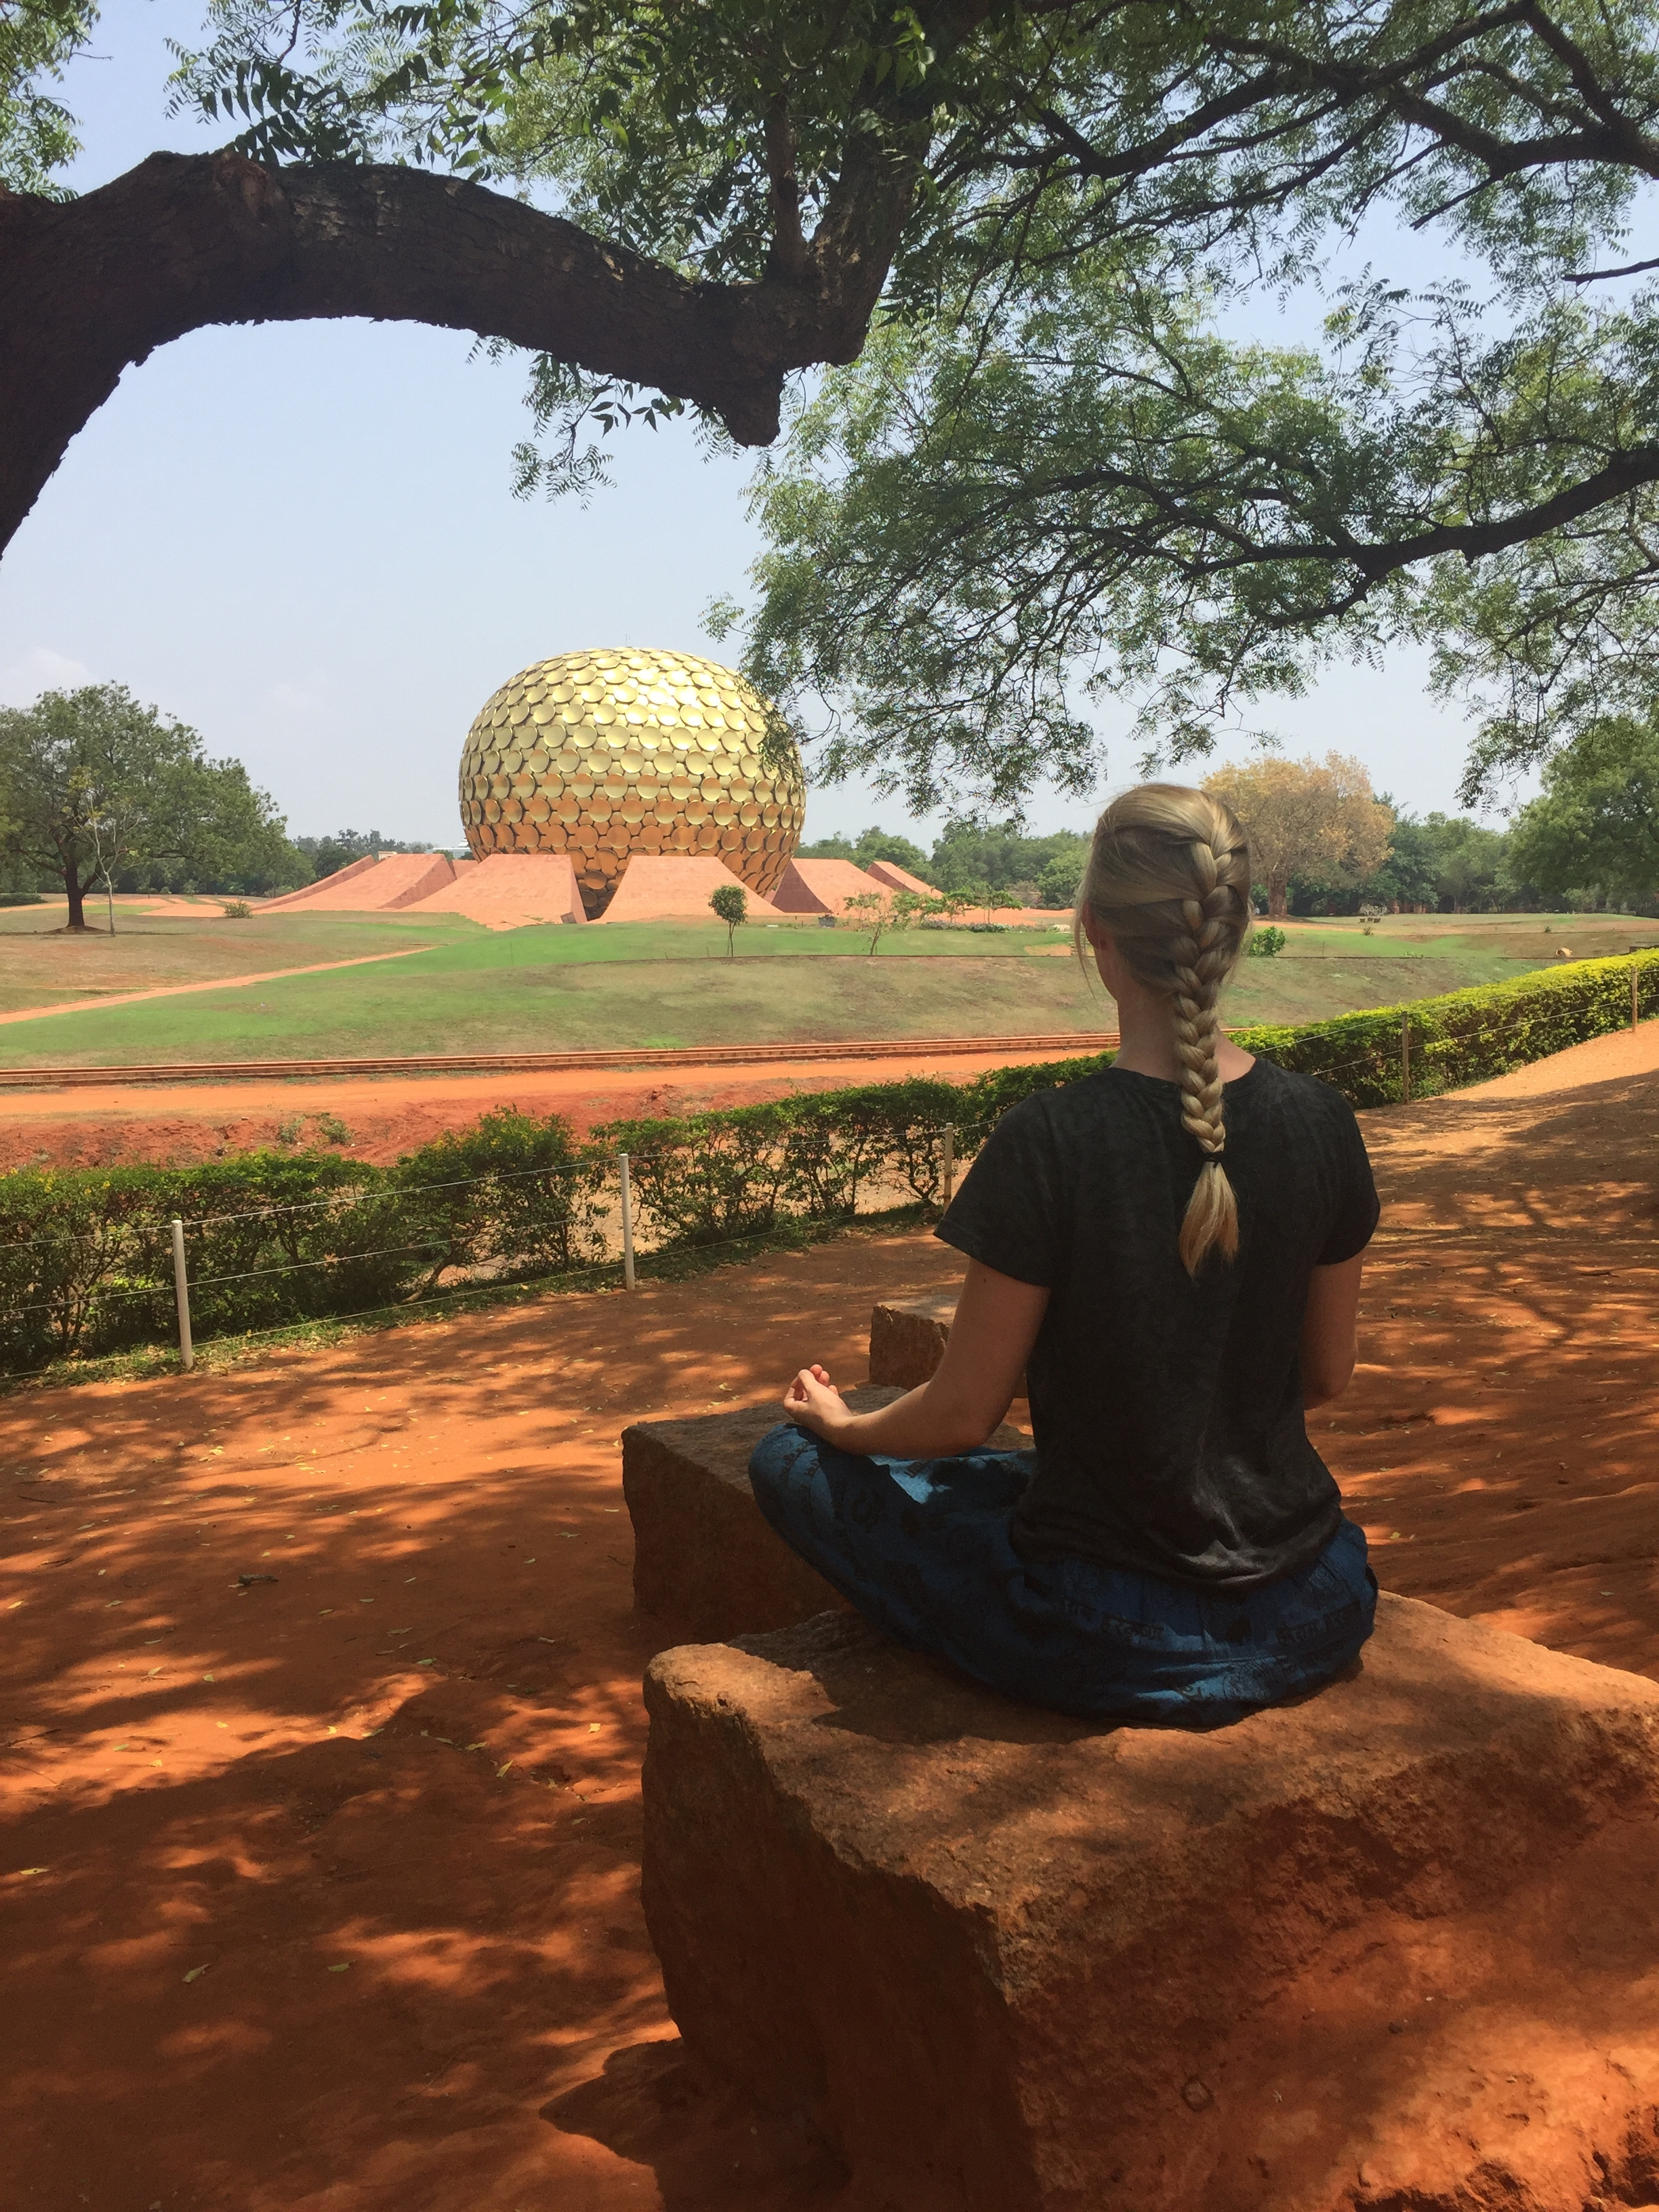 Traveling India as a Blonde Woman - Exploring 3 Indian States in 3 Months